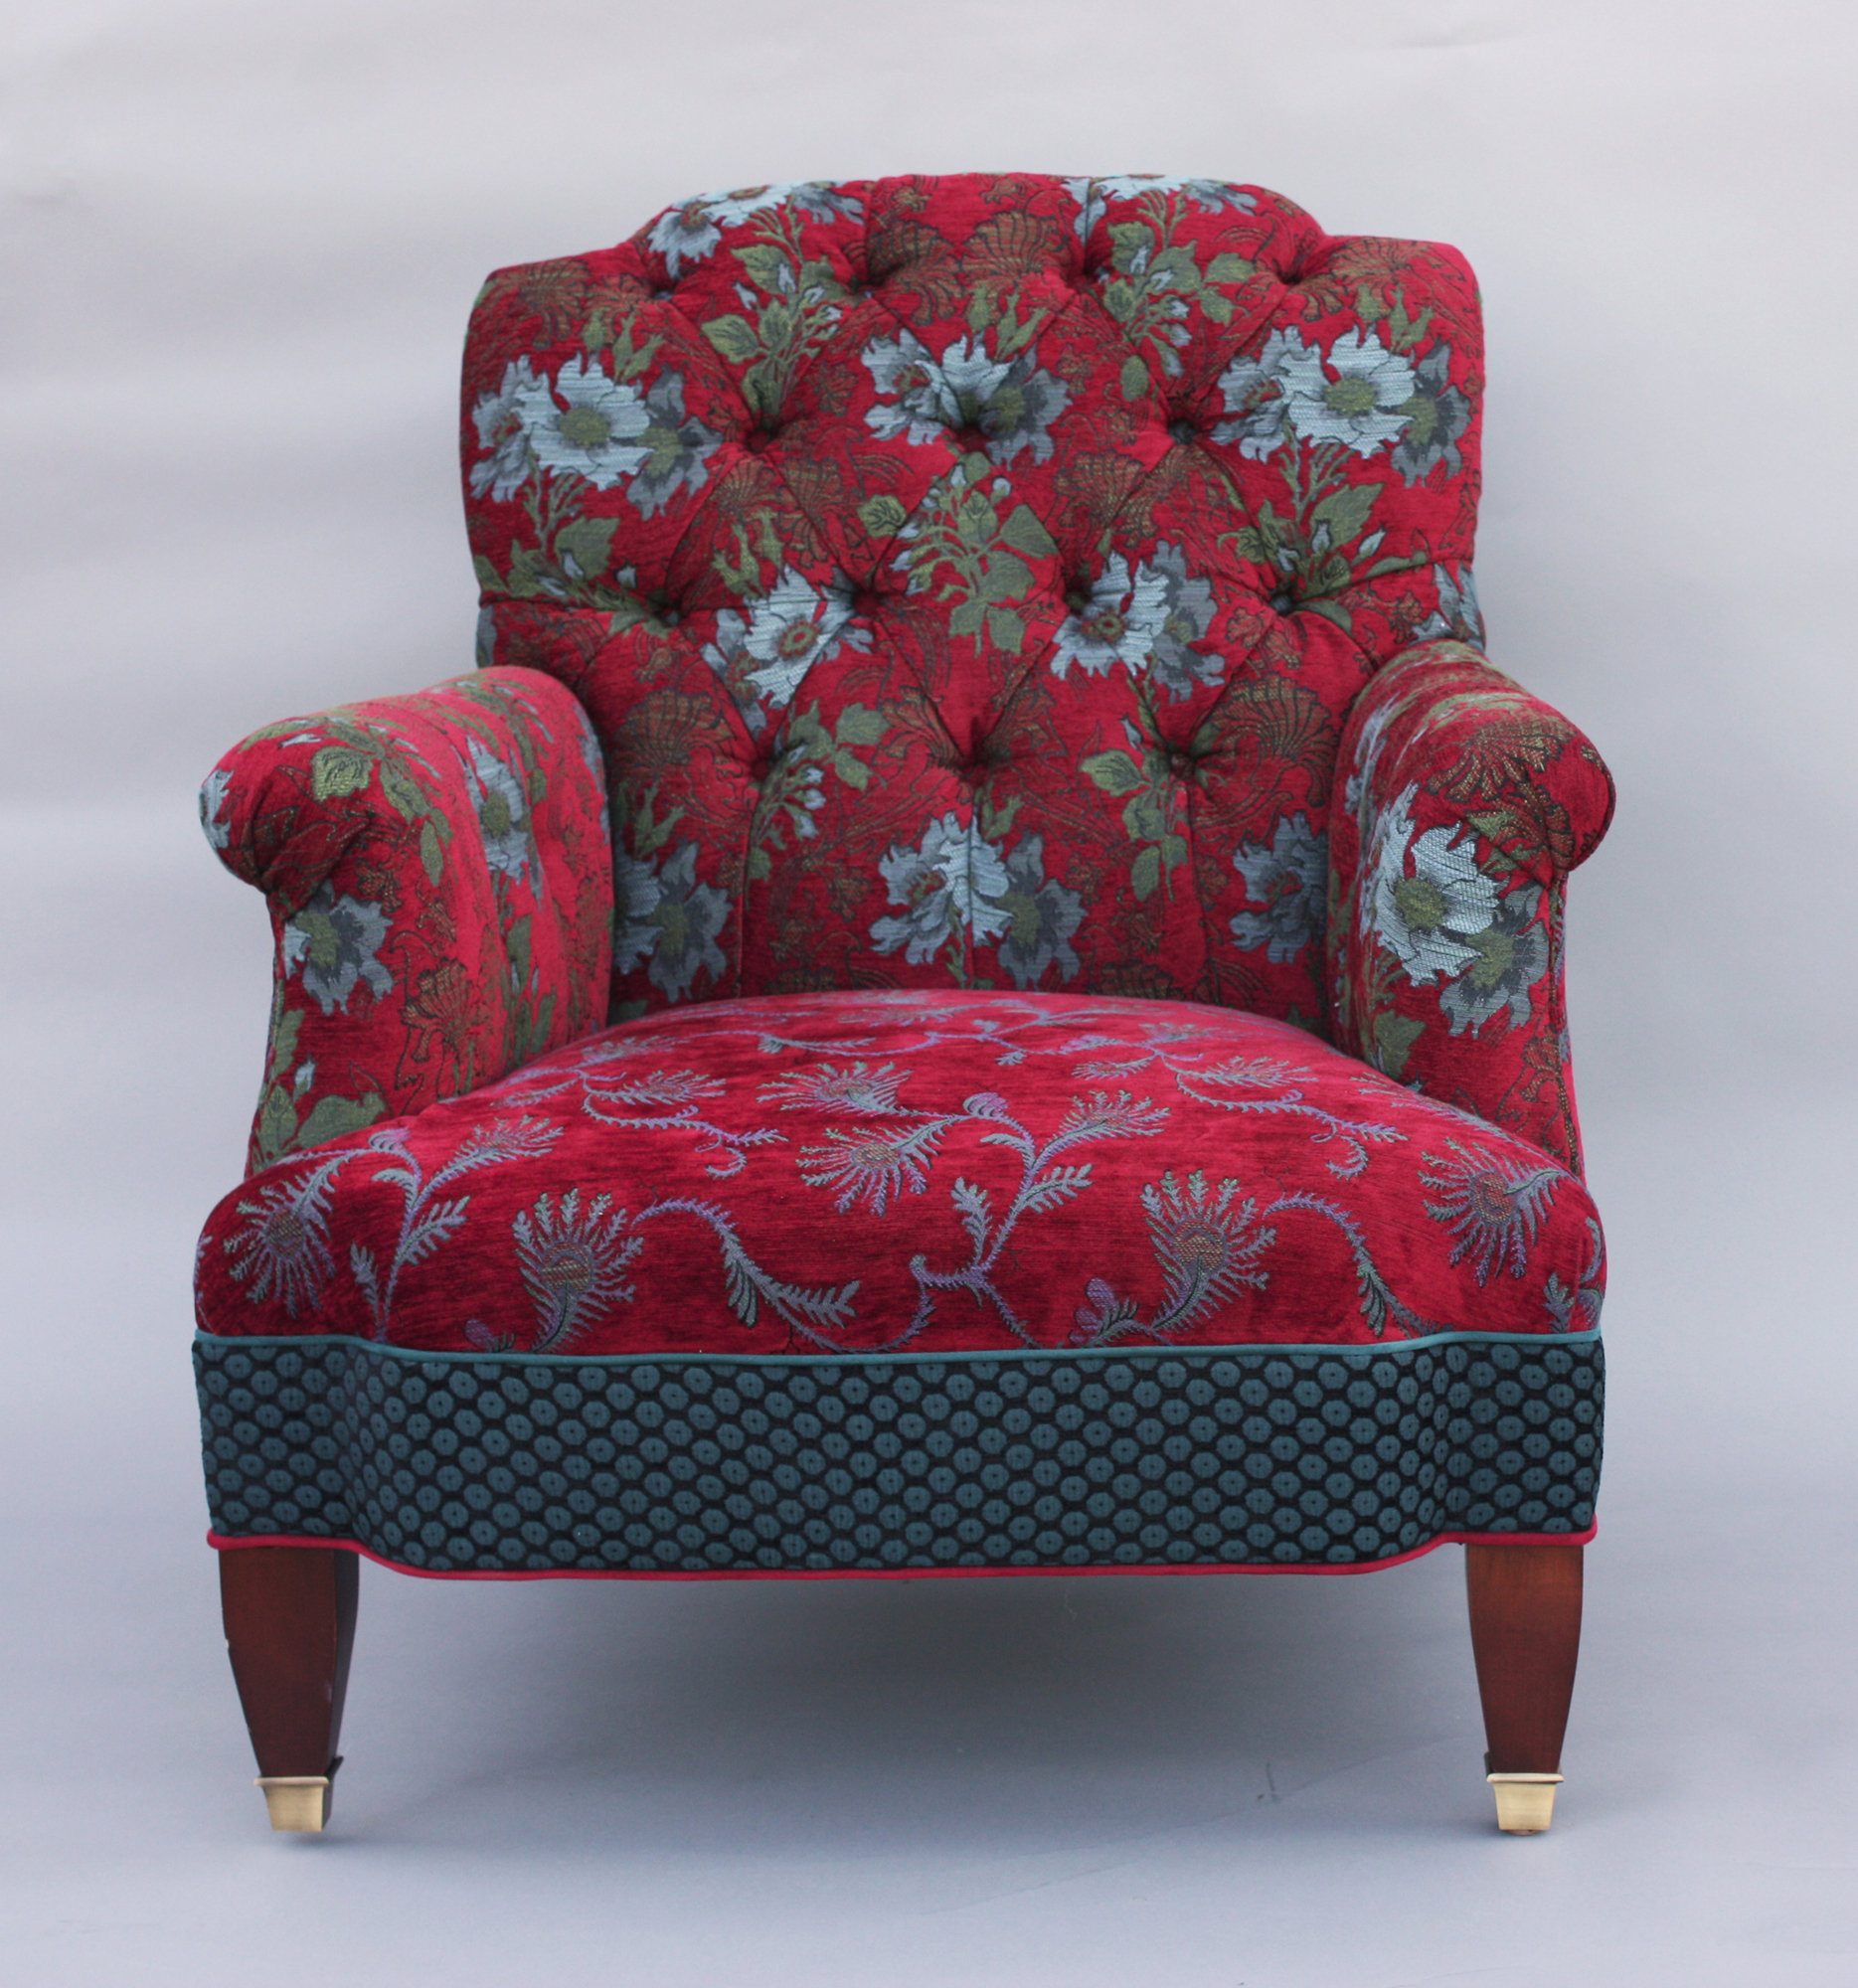 Art Nouveau Home Decor Chelsea Chair In Red Wine By Mary Lynn O Shea Upholstered